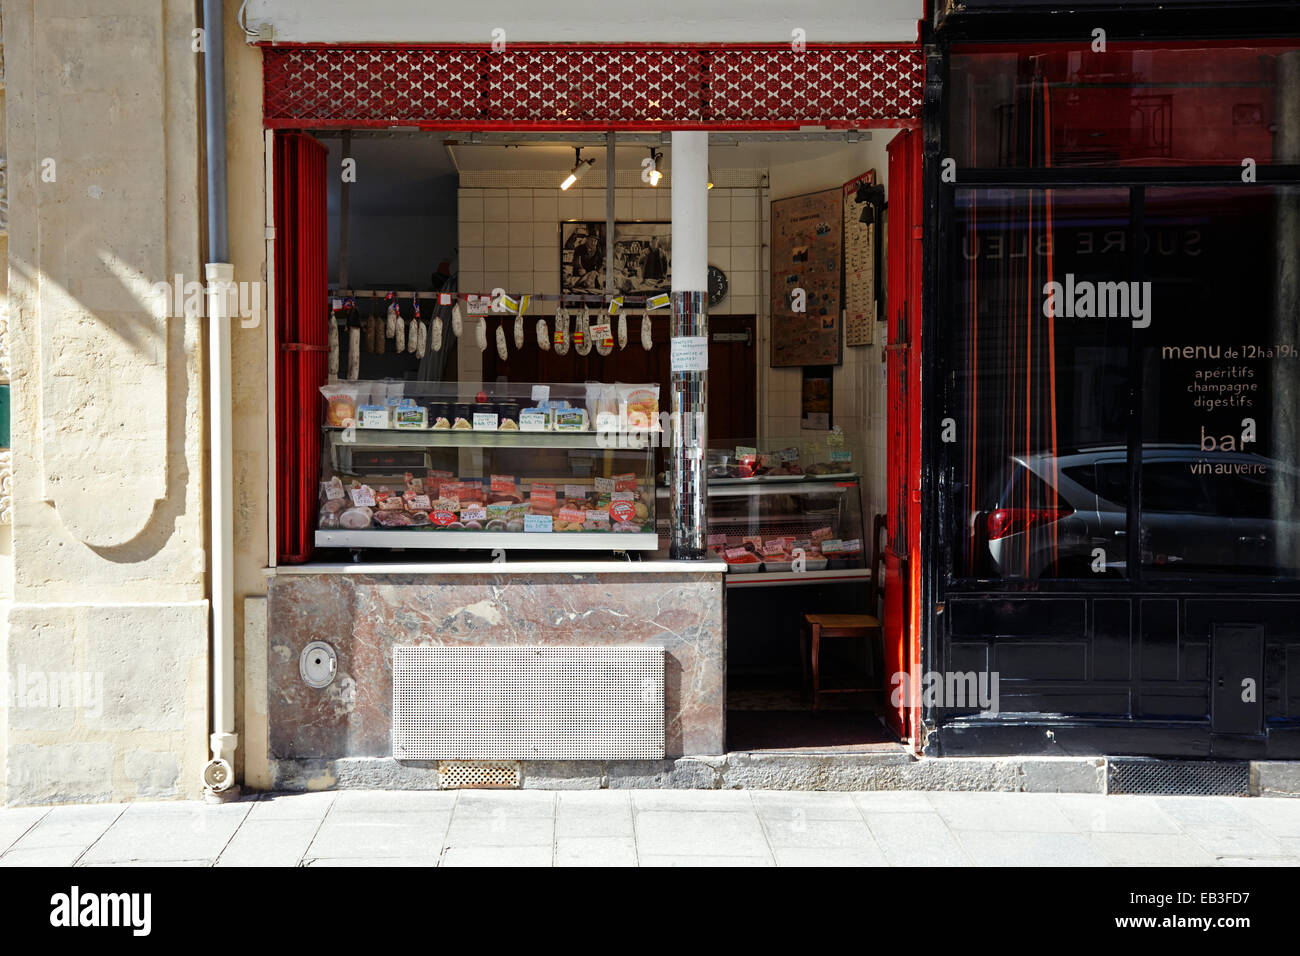 Paris food shop selling cooked meats - Stock Image